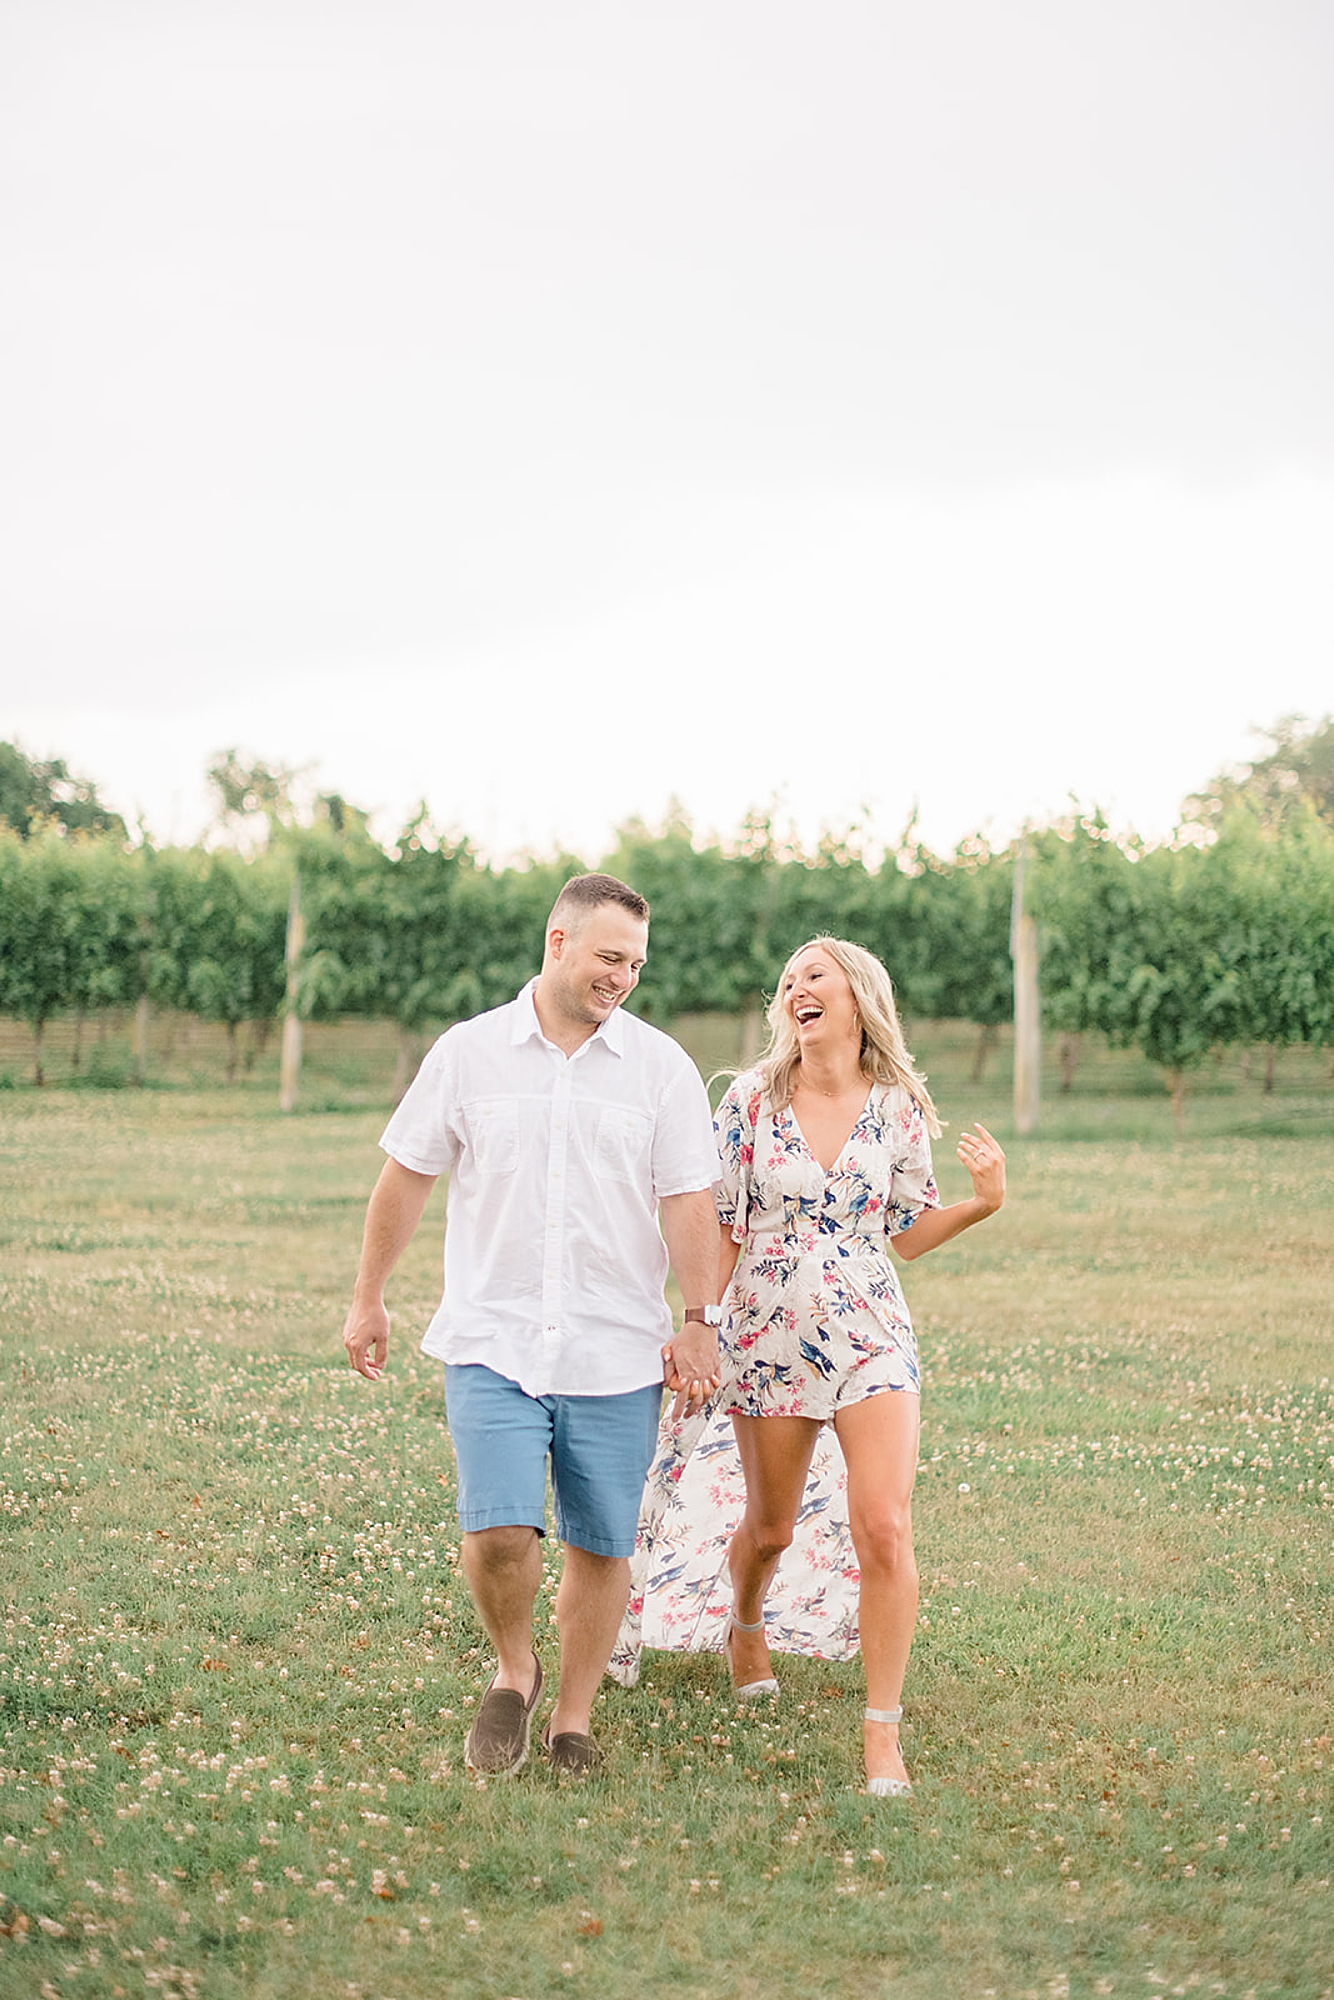 Willow Creek Winery New Jersey Engagement Photography with Dog by Magdalena Studios 0009